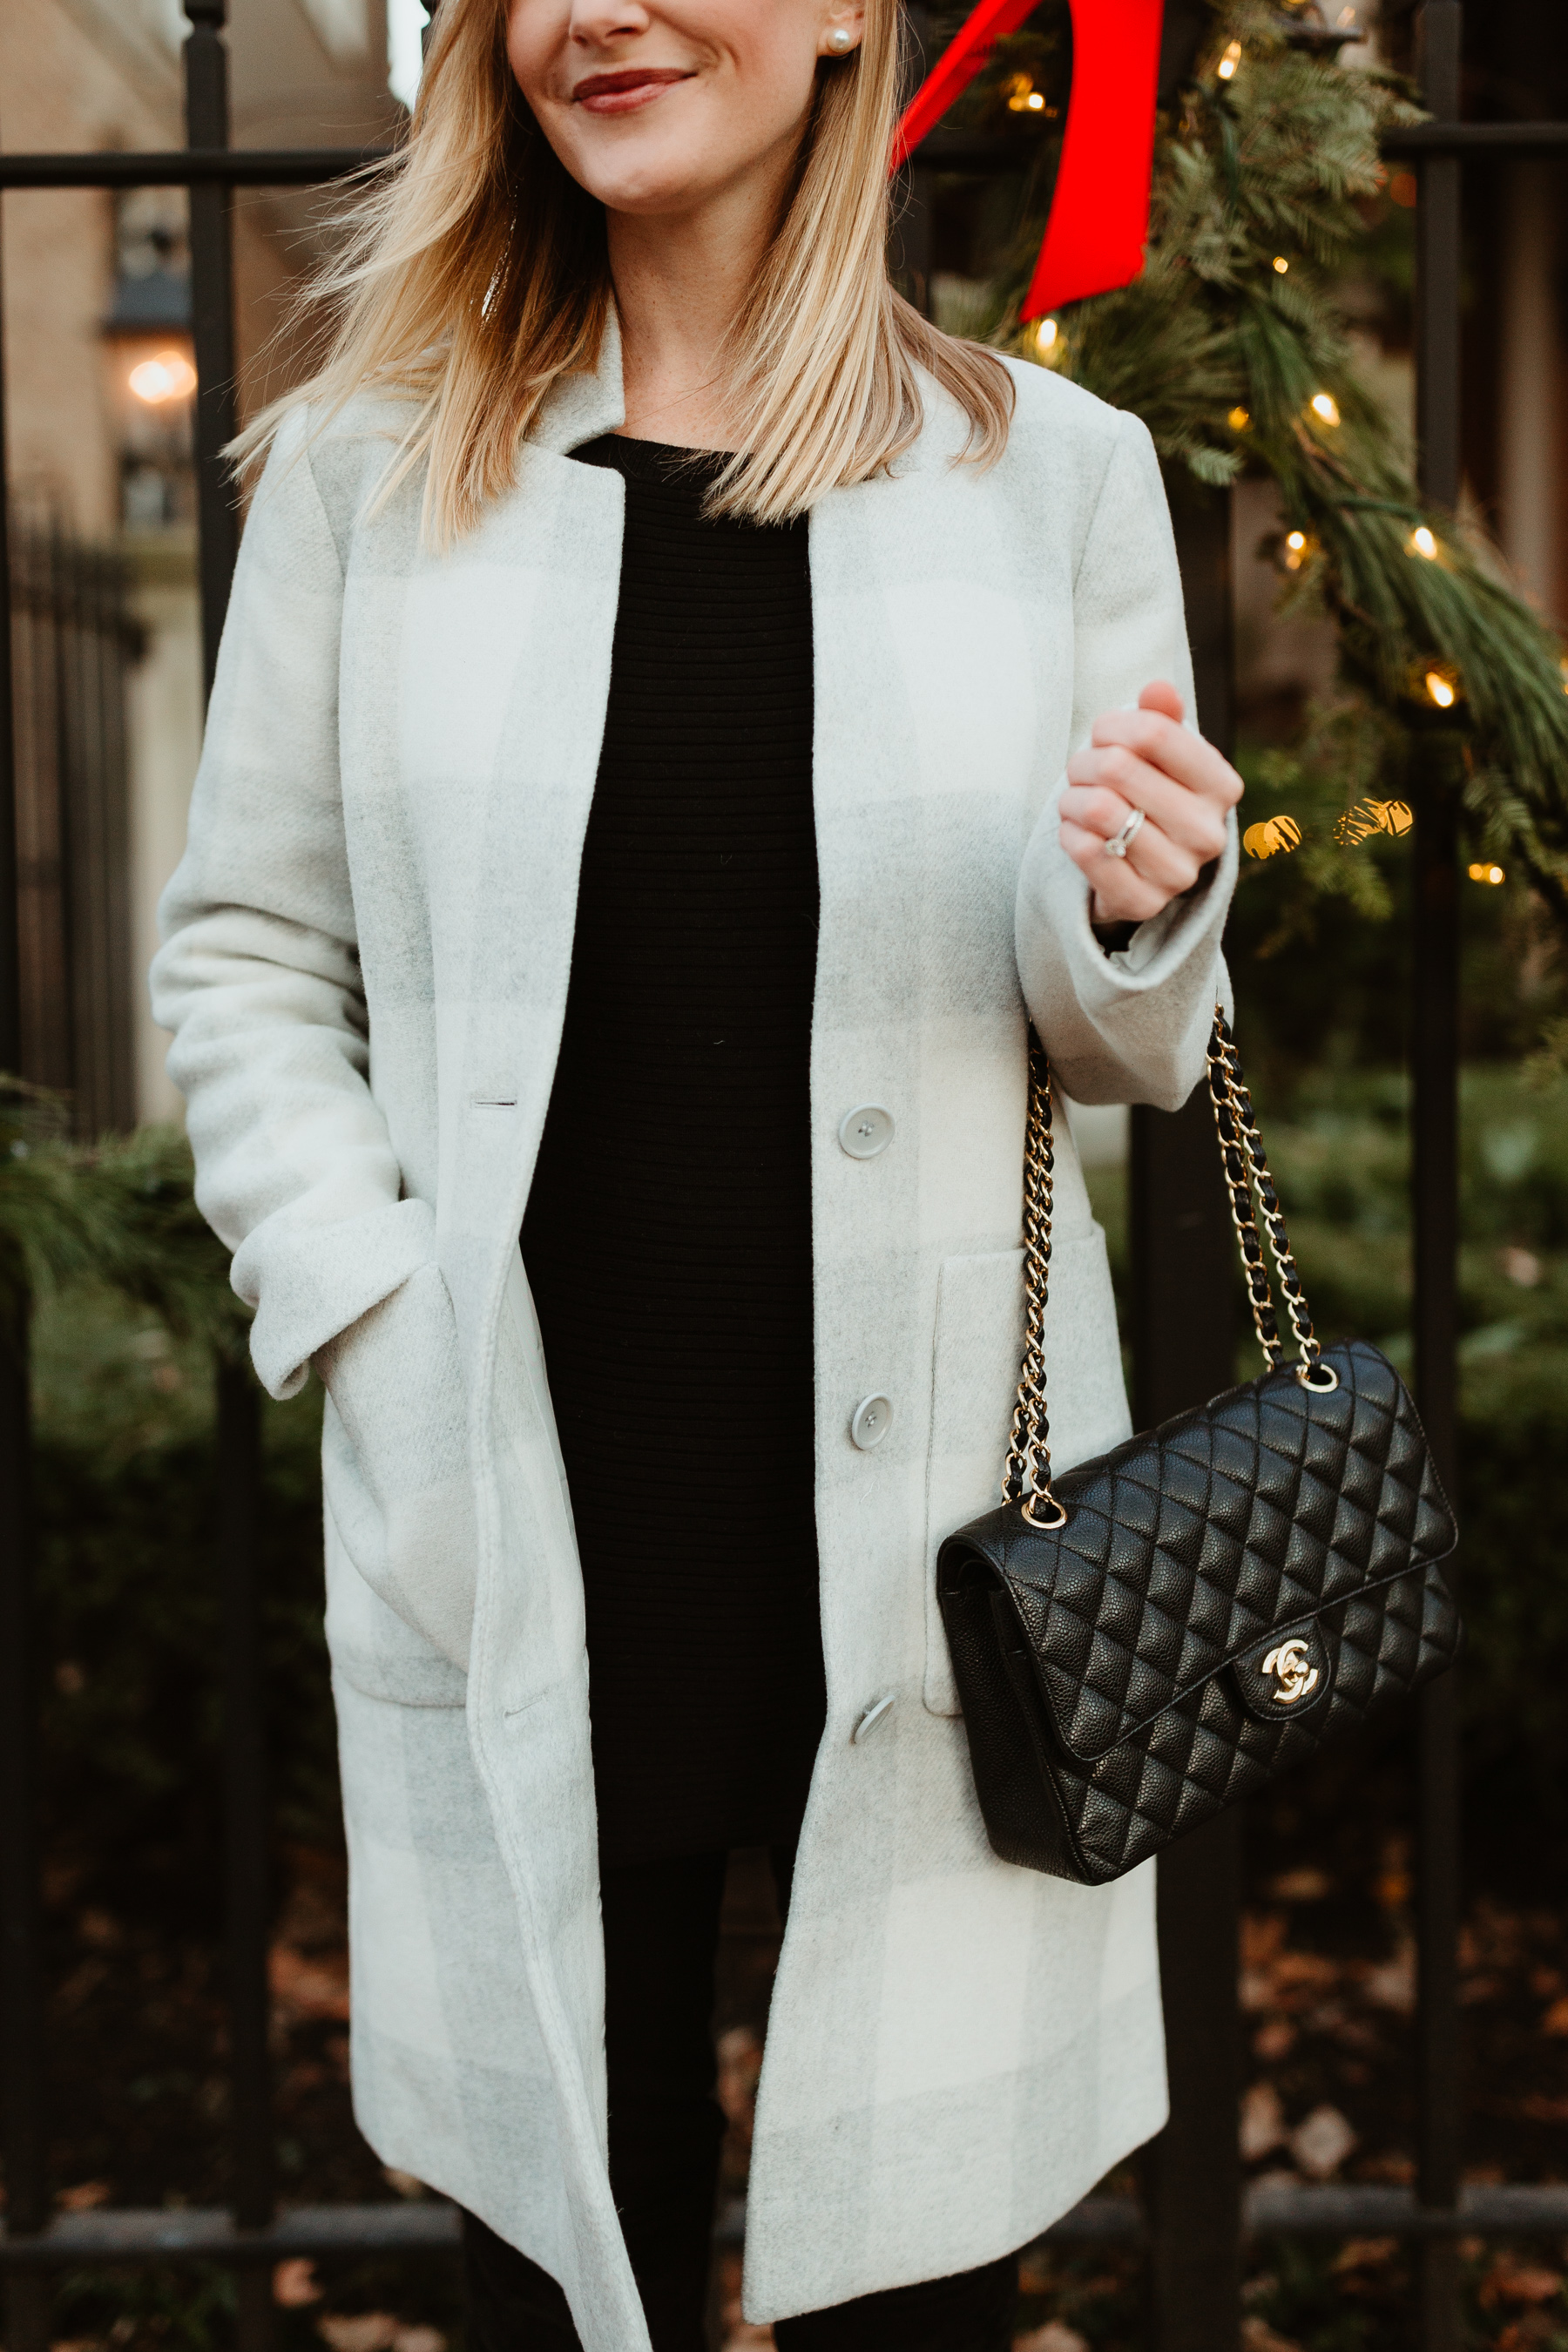 Eileen Fisher Buffalo Check Car Coat / Red Beret/ J.Brand Maternity Jeans / Black Cashmere Sweater